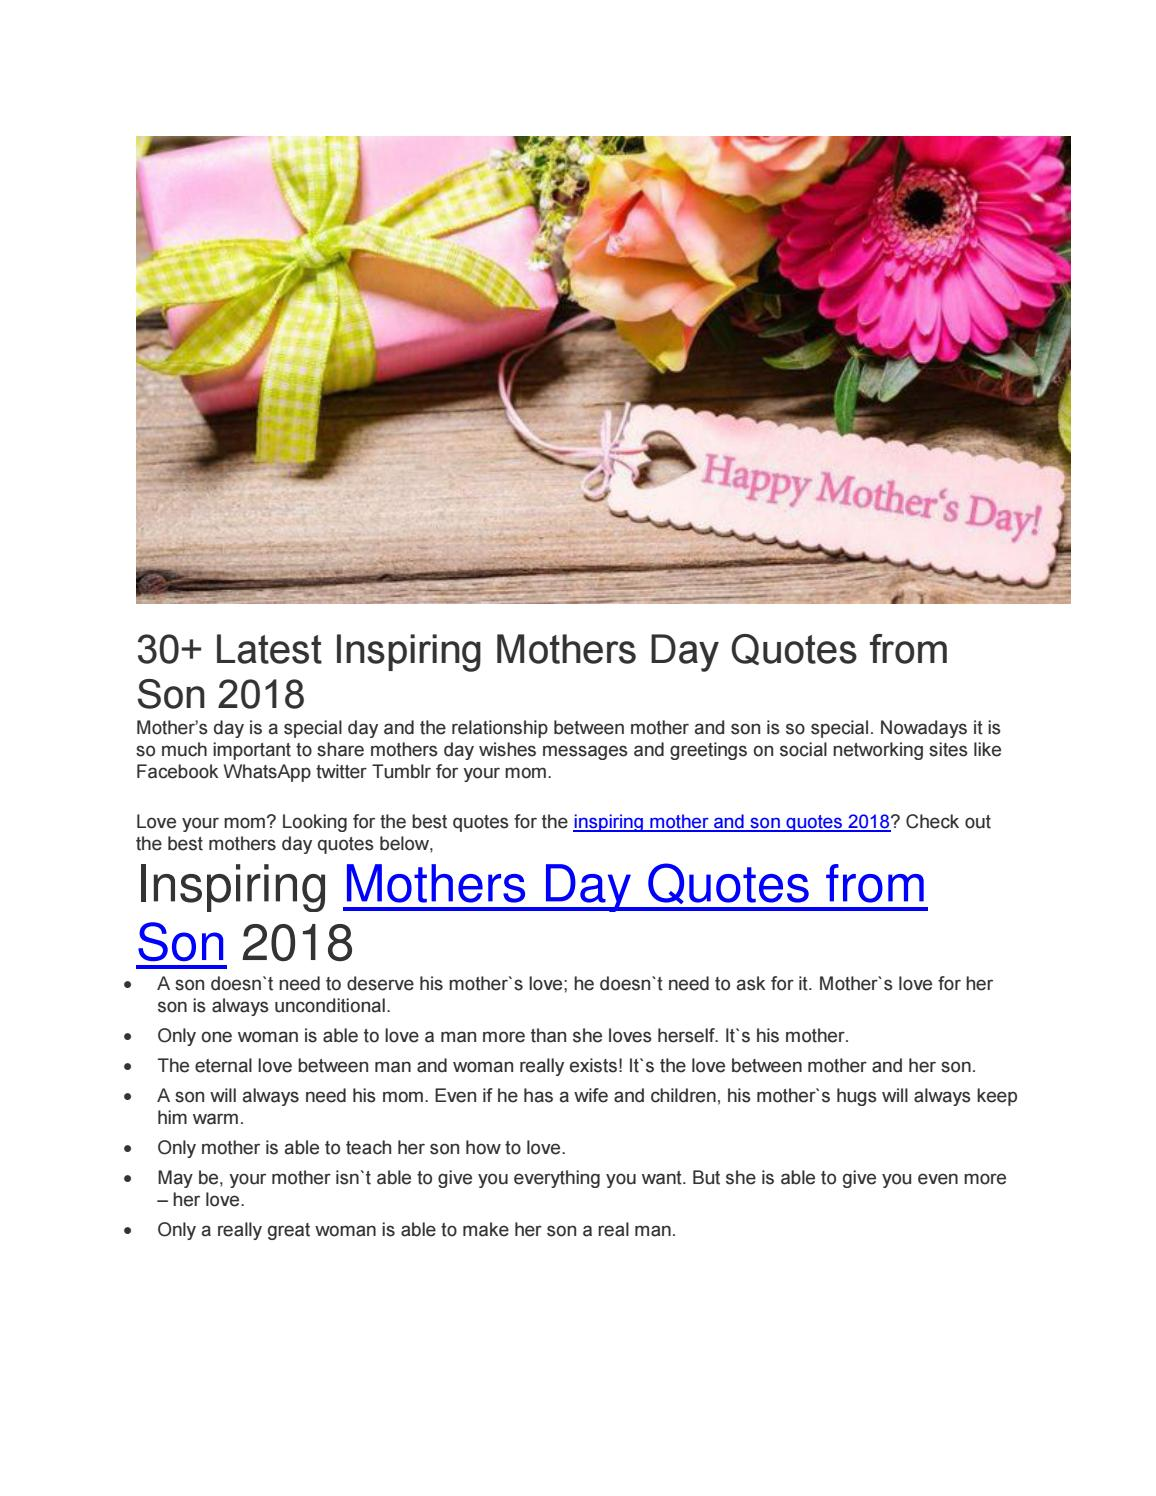 30 latest inspiring mothers day quotes from son 2018 by Zill